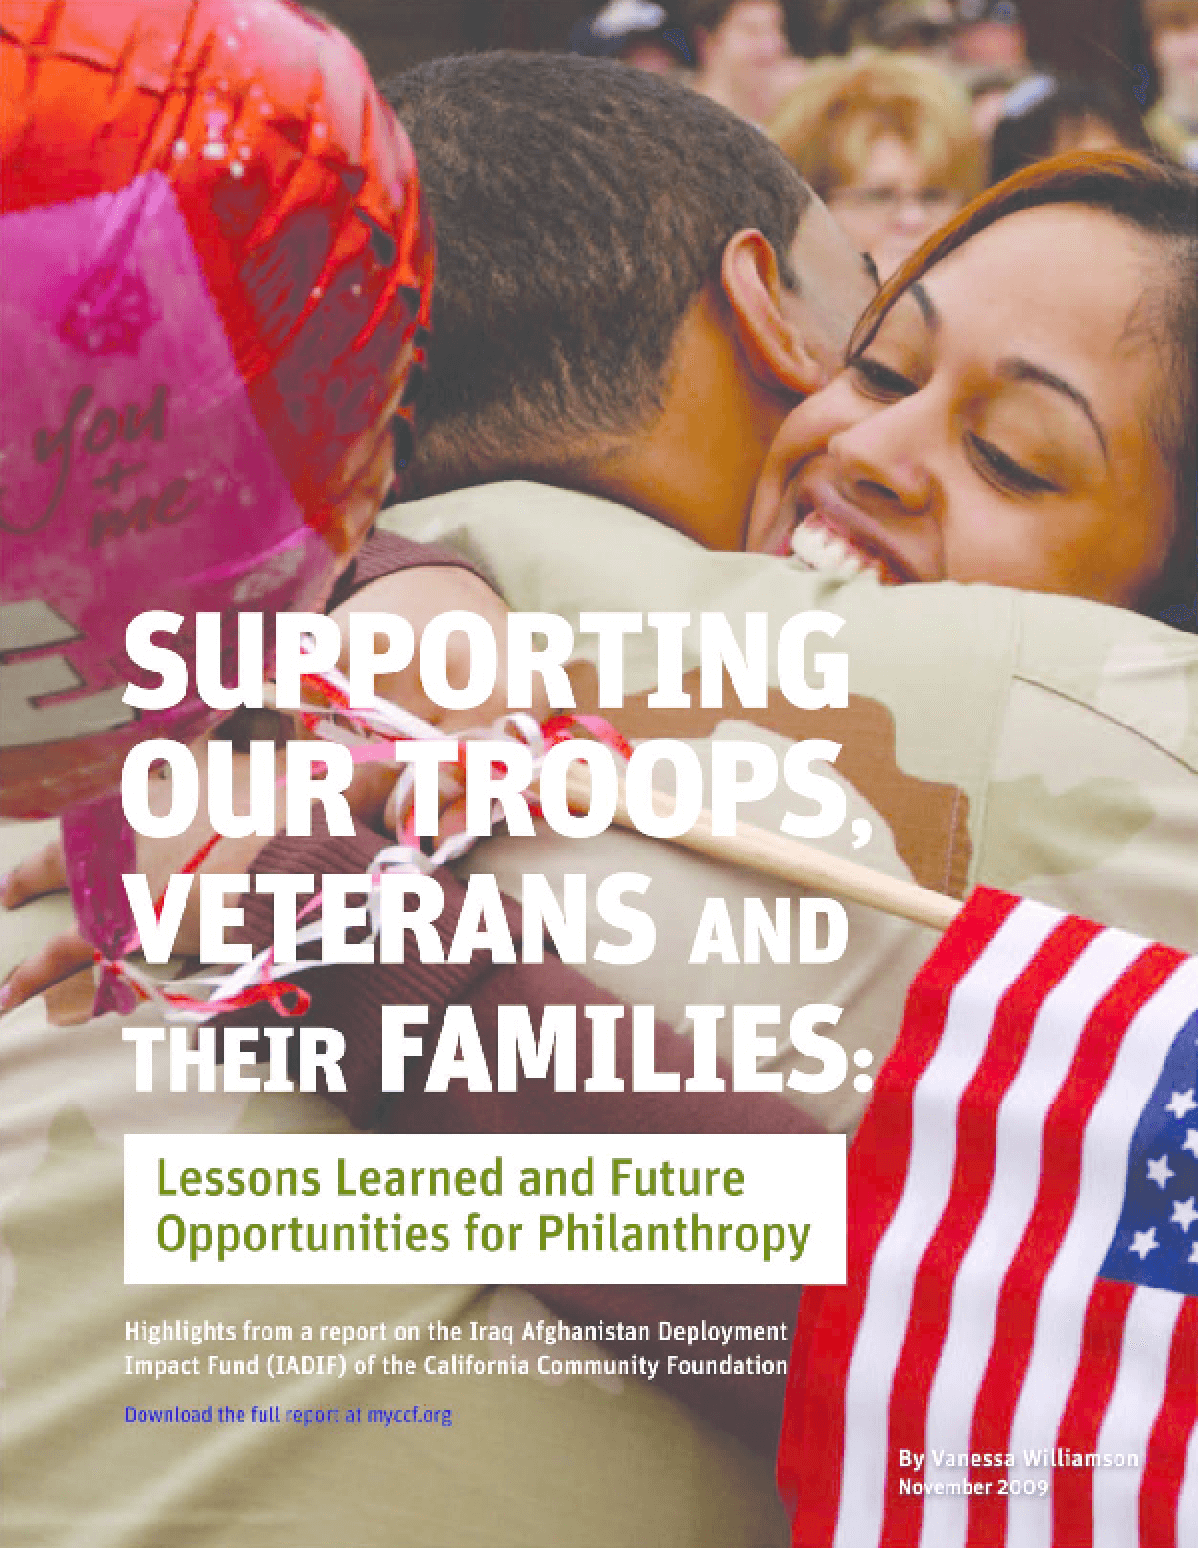 Supporting Our Troops, Veterans and Their Families: Lessons Learned and Future Opportunities for Philanthropy